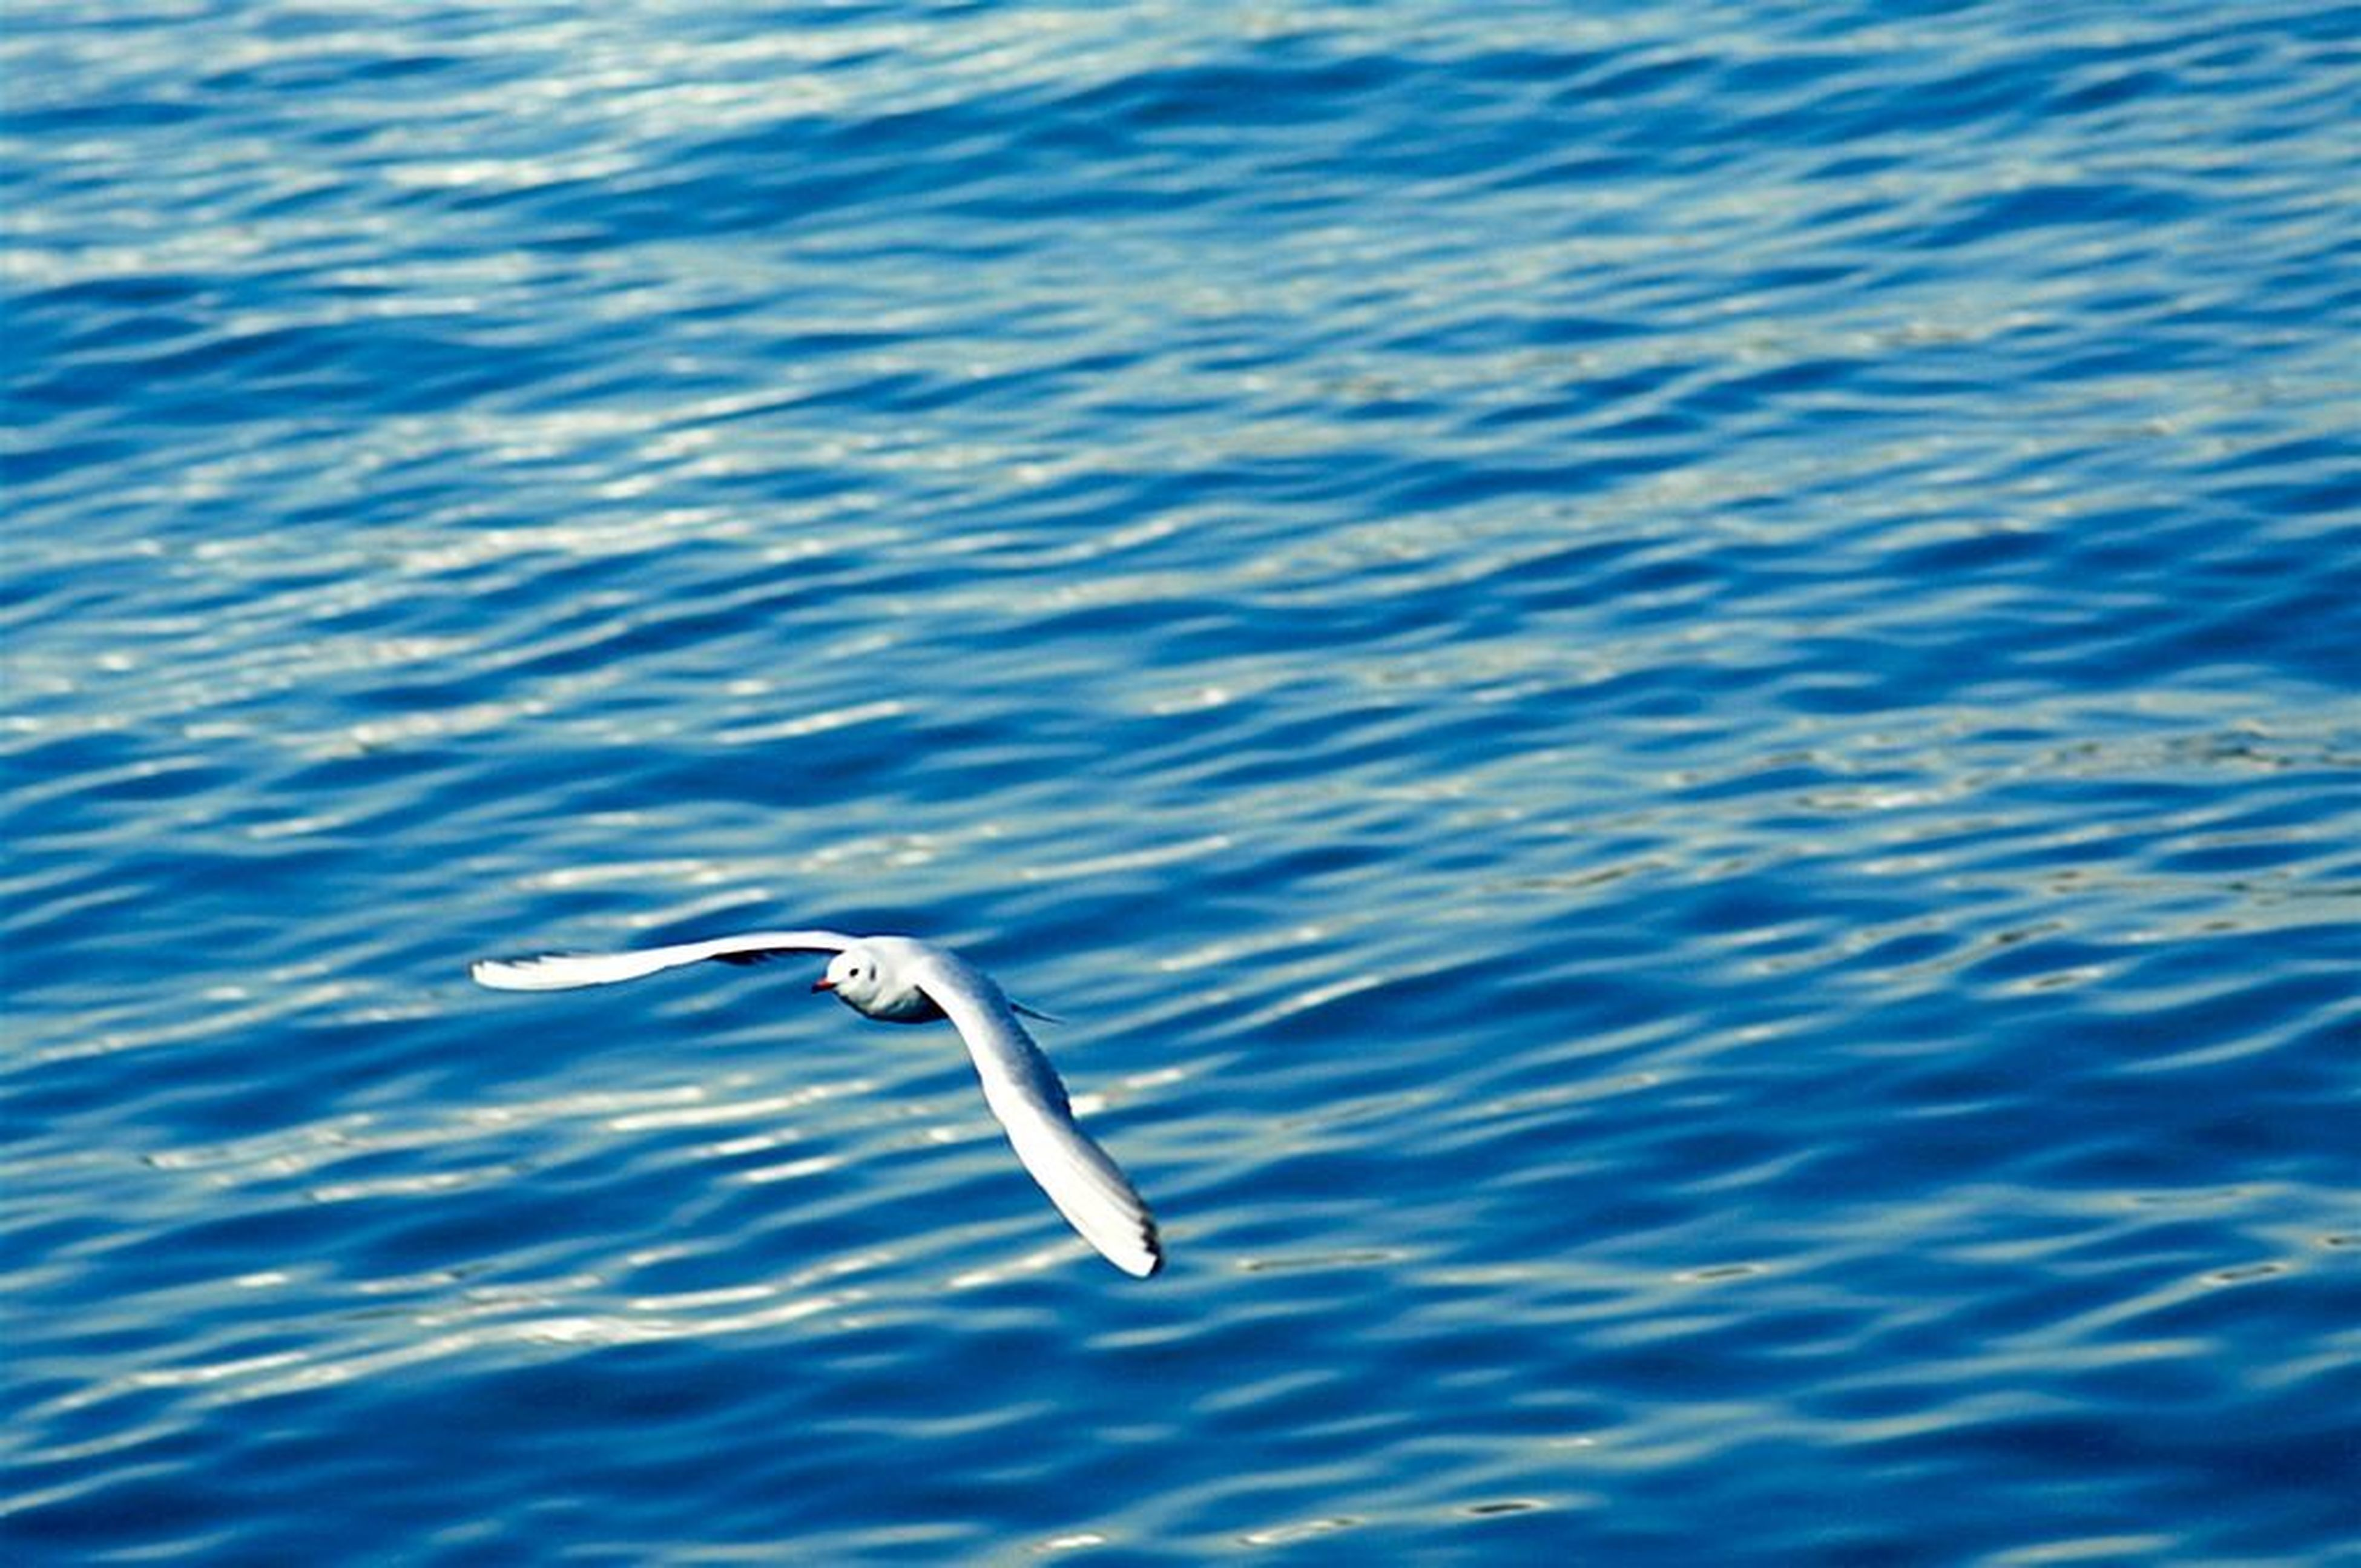 animal themes, animals in the wild, wildlife, bird, one animal, water, flying, spread wings, seagull, sea, nature, blue, waterfront, mid-air, rippled, beauty in nature, motion, outdoors, no people, day